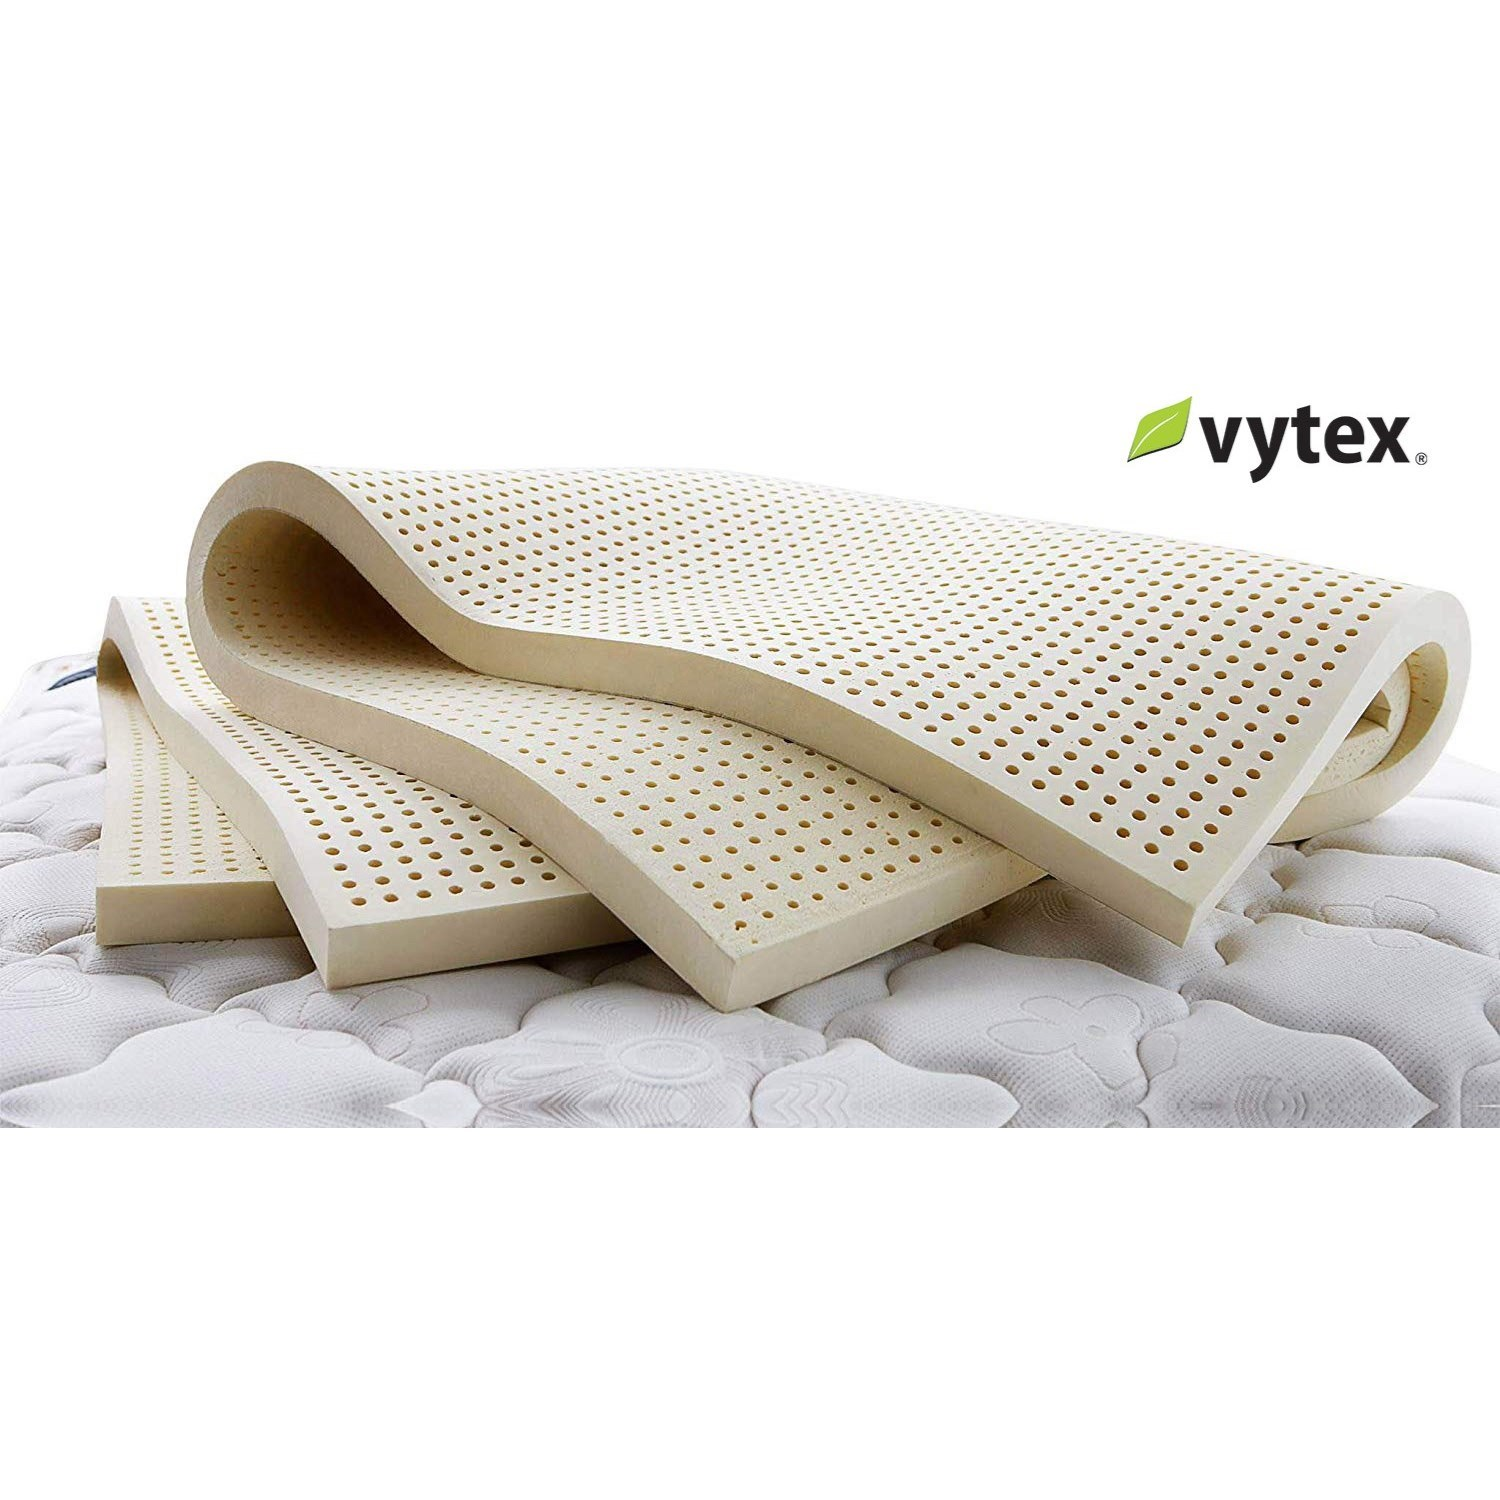 "Vytex Mattress Toppers - Firm Twin 3"" Firm Latex Mattress Topper by Vytex at Rotmans"